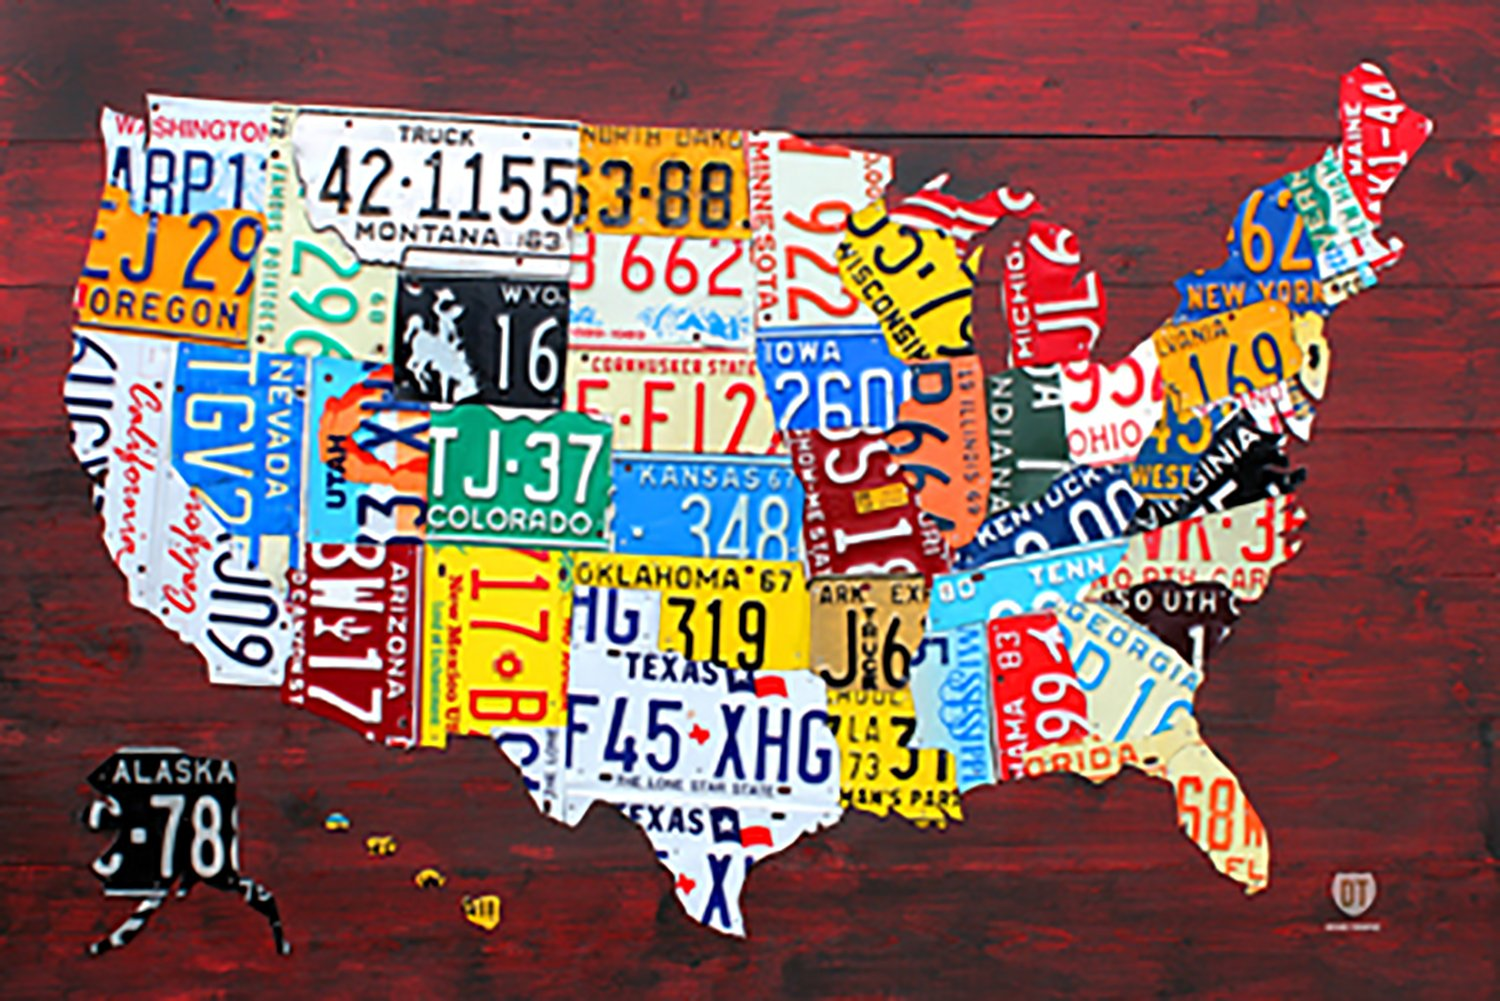 Amazoncom Poster Service License Plate Map Of The US Poster - License plate usa map